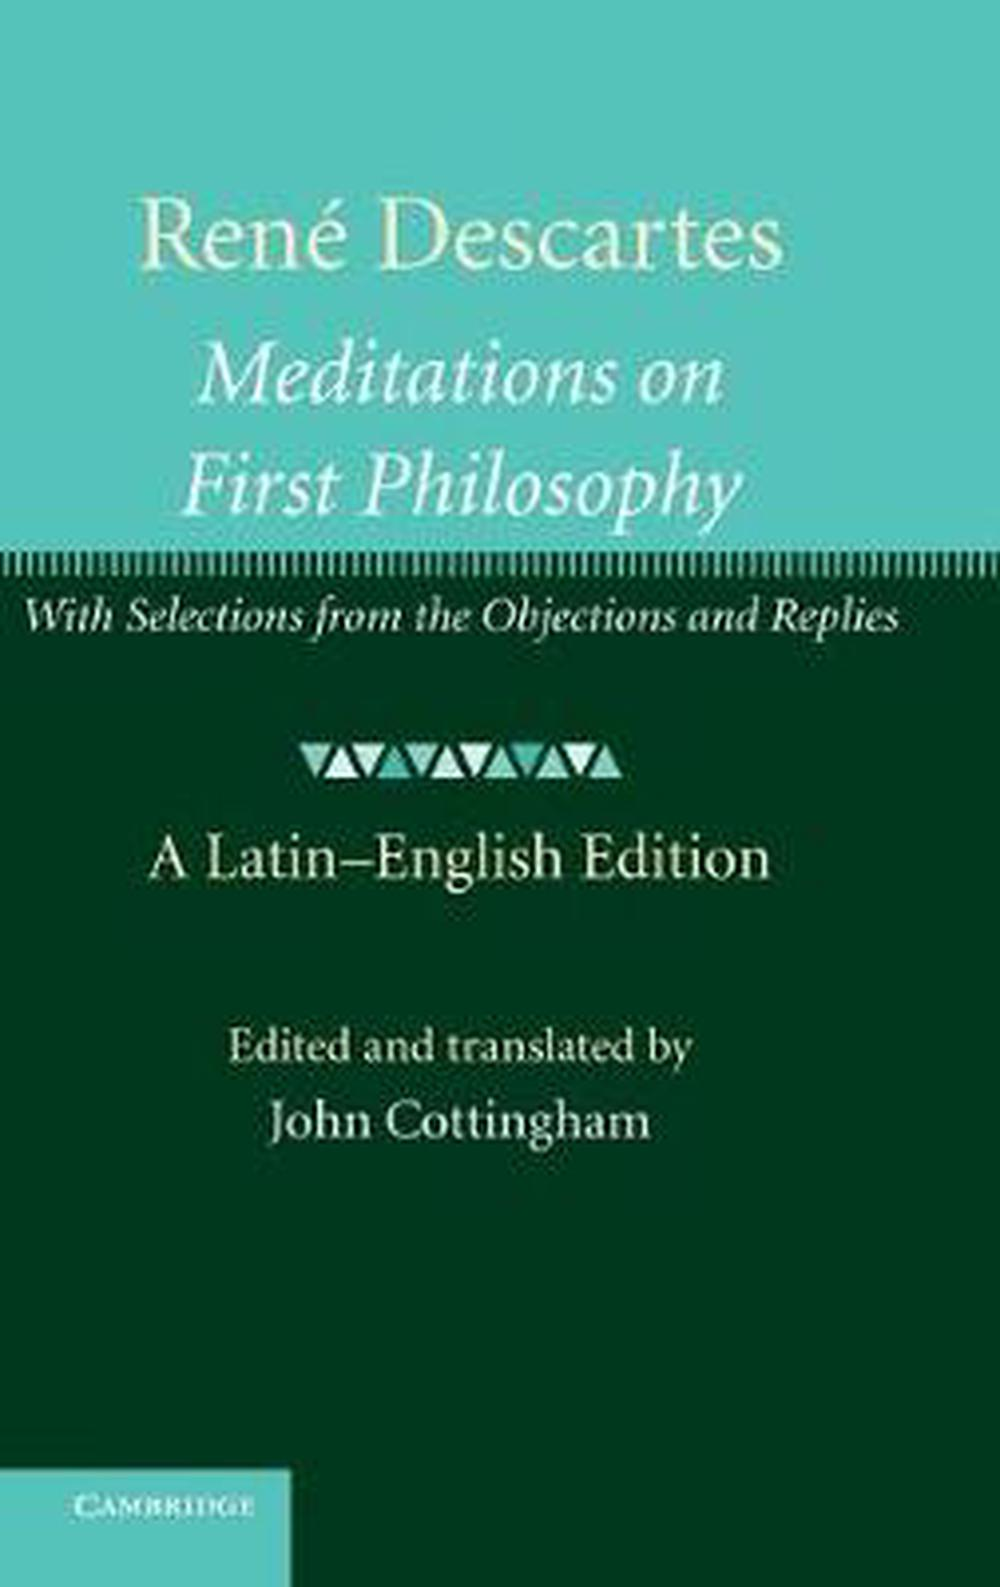 an examination of meditations in the first philosophy by rene descartes The meditations, one of the key texts of western philosophy, is the most widely studied of all descartes' writings this authoritative translation by john cottingham, taken from the much acclaimed three-volume cambridge edition of the philosophical writings of descartes, is based upon the best available texts and presents descartes' central metaphysical writings in clear, readable modern english.